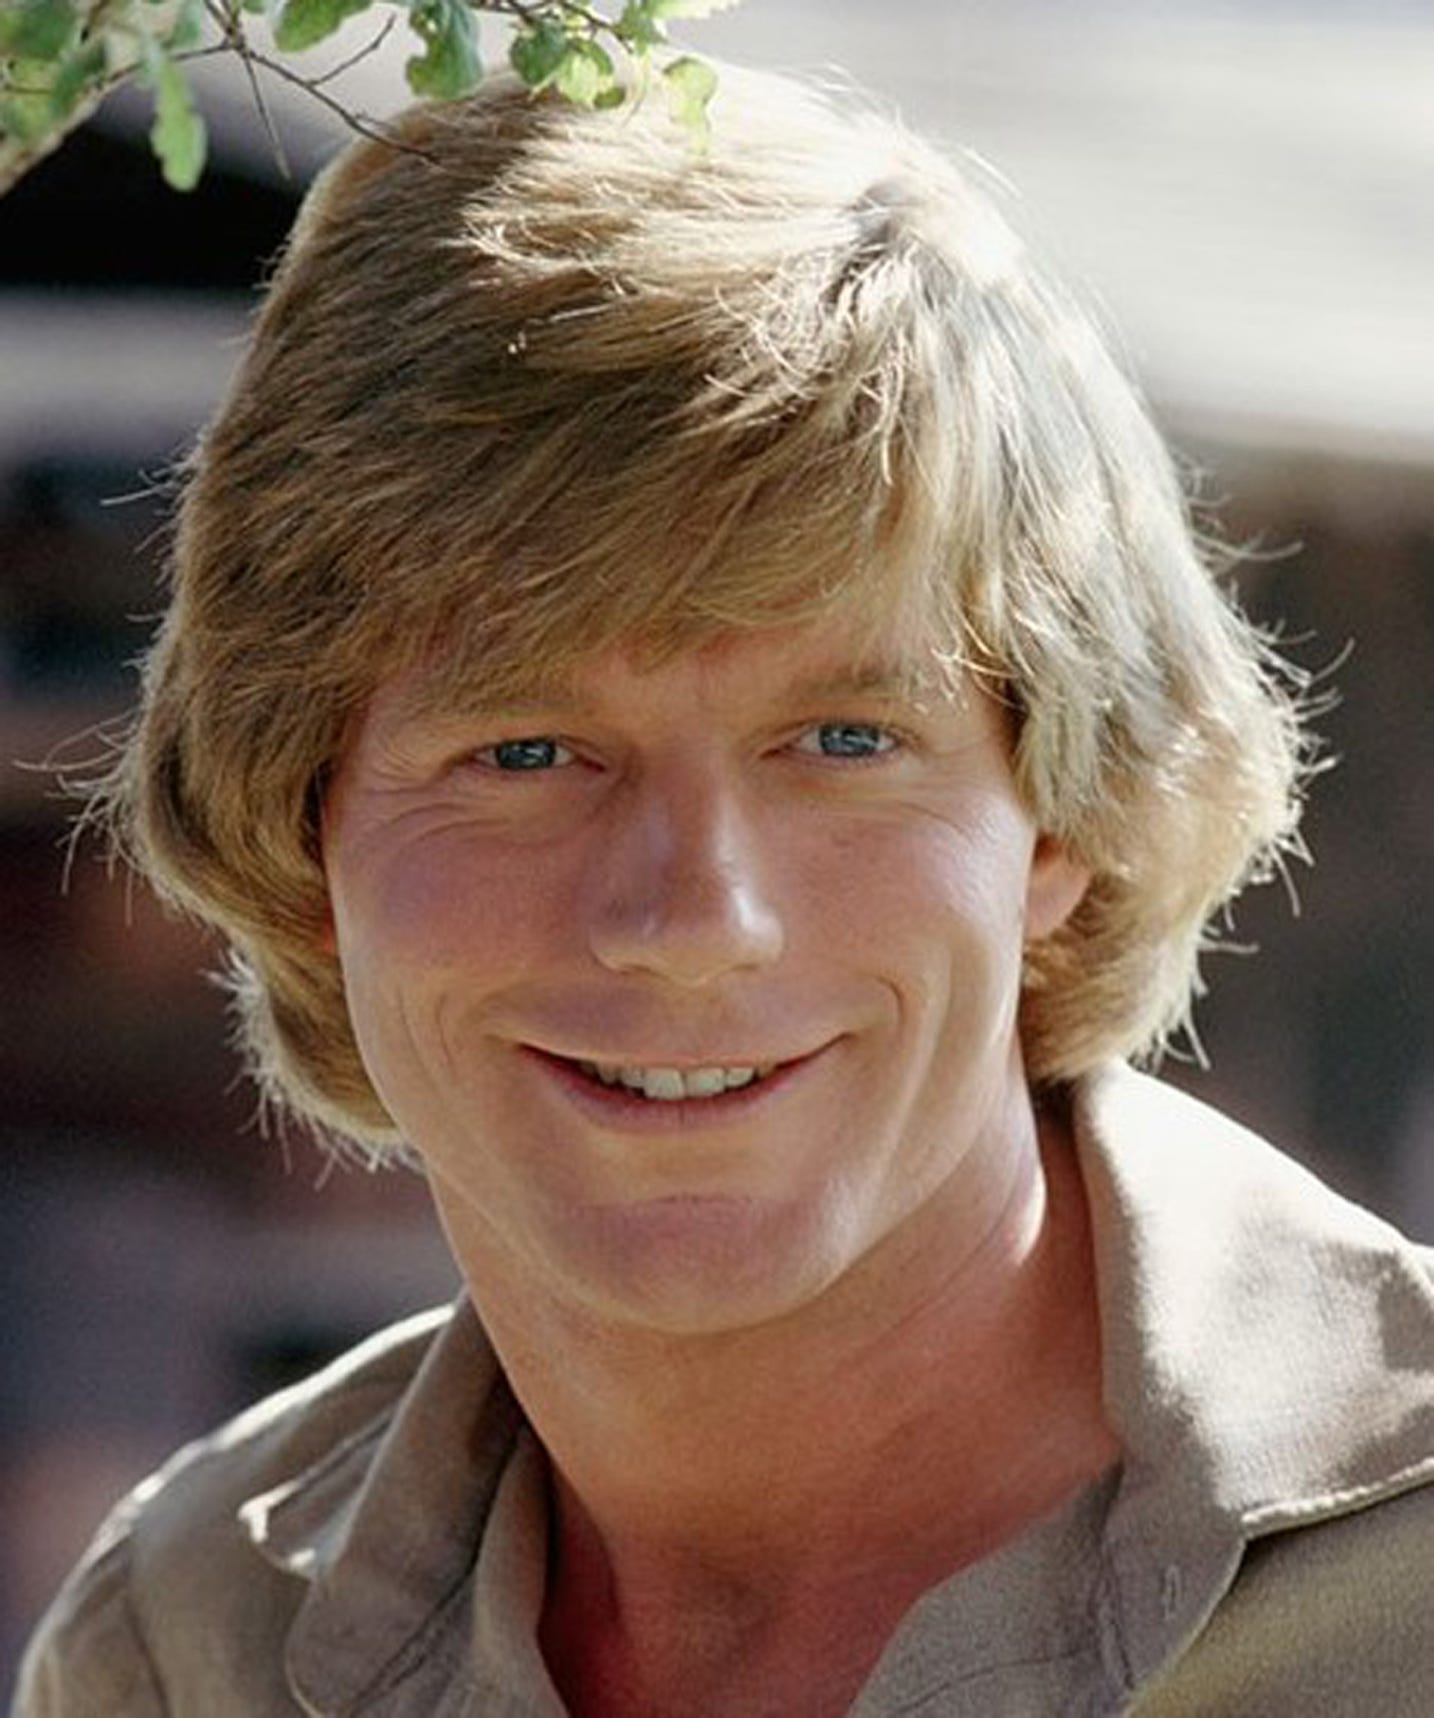 dean butler 2016dean butler age, dean butler net worth, dean butler now, dean butler wife, dean butler height, dean butler actor, dean butler imdb, dean butler 2016, dean butler melissa gilbert, dean butler facebook, dean butler movies, dean butler farmers insurance, dean butler wedding, dean butler jockey, dean butler lenscrafters, dean butler 2017, dean butler katherine cannon, dean butler into the woods, dean butler today, dean butler documentary